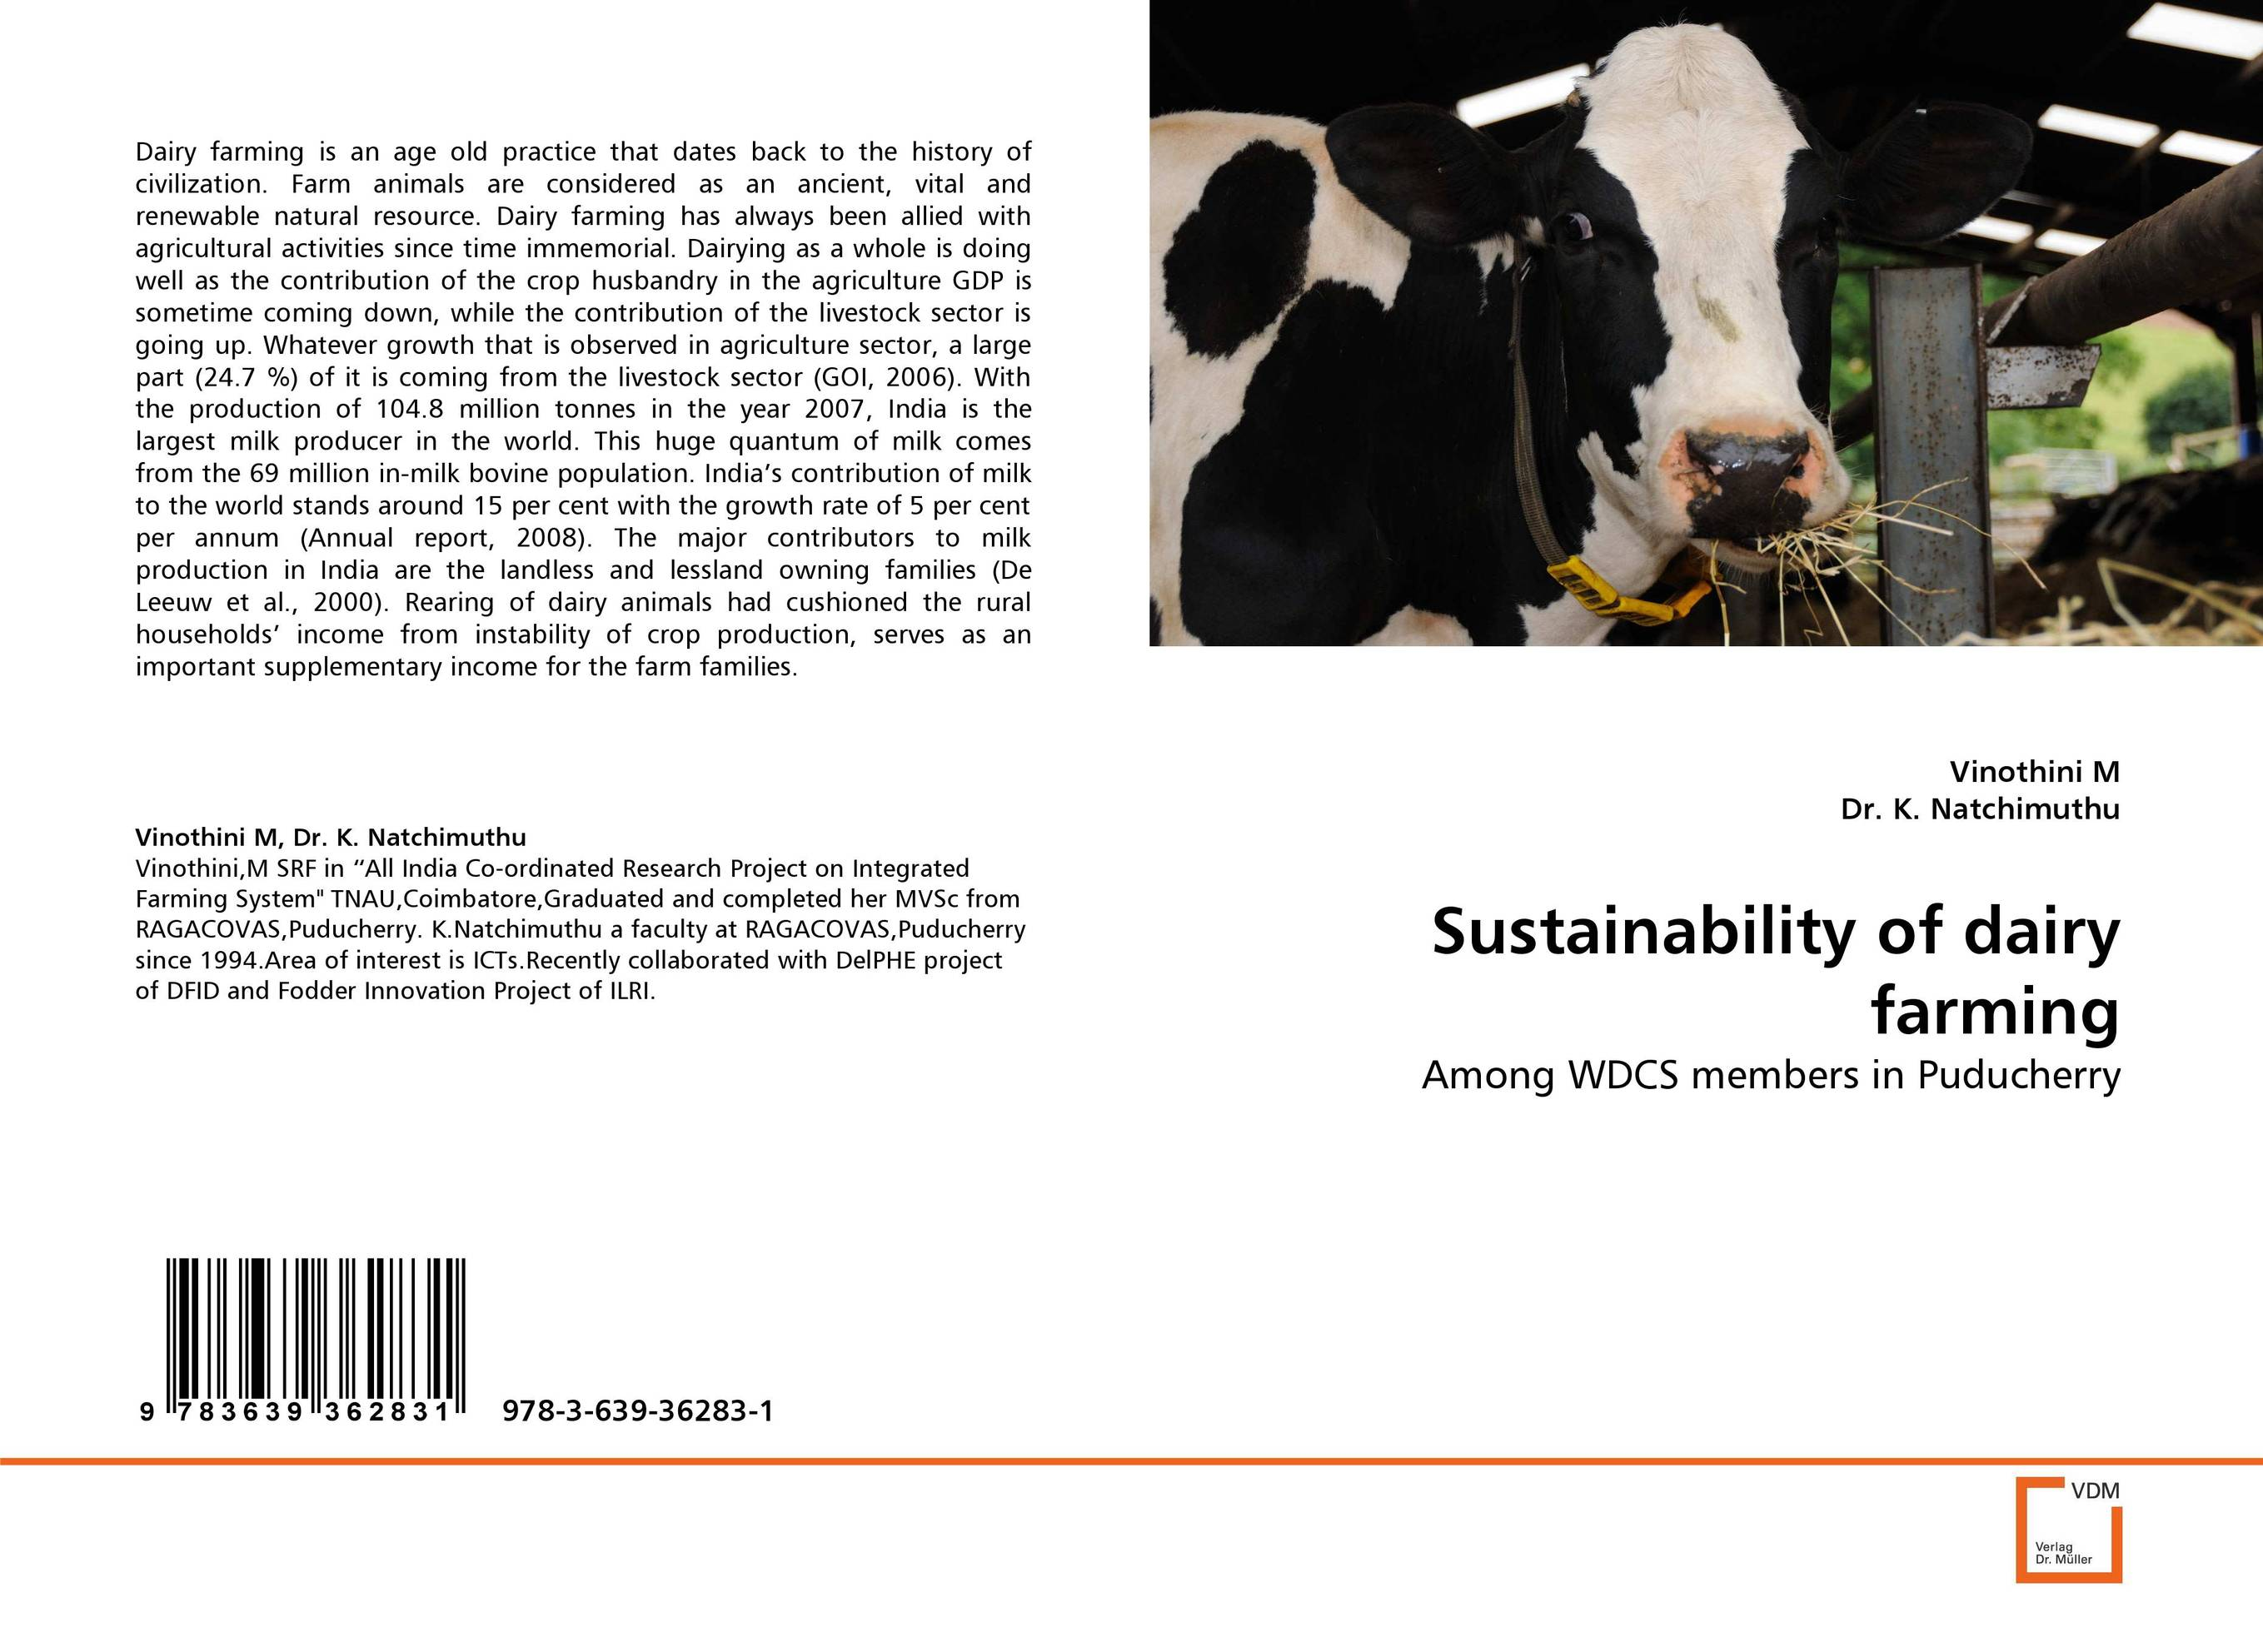 SUSTAINABILITY OF DAIRY FARMING adsorbent of mycotoxins as feed additives in farm animals